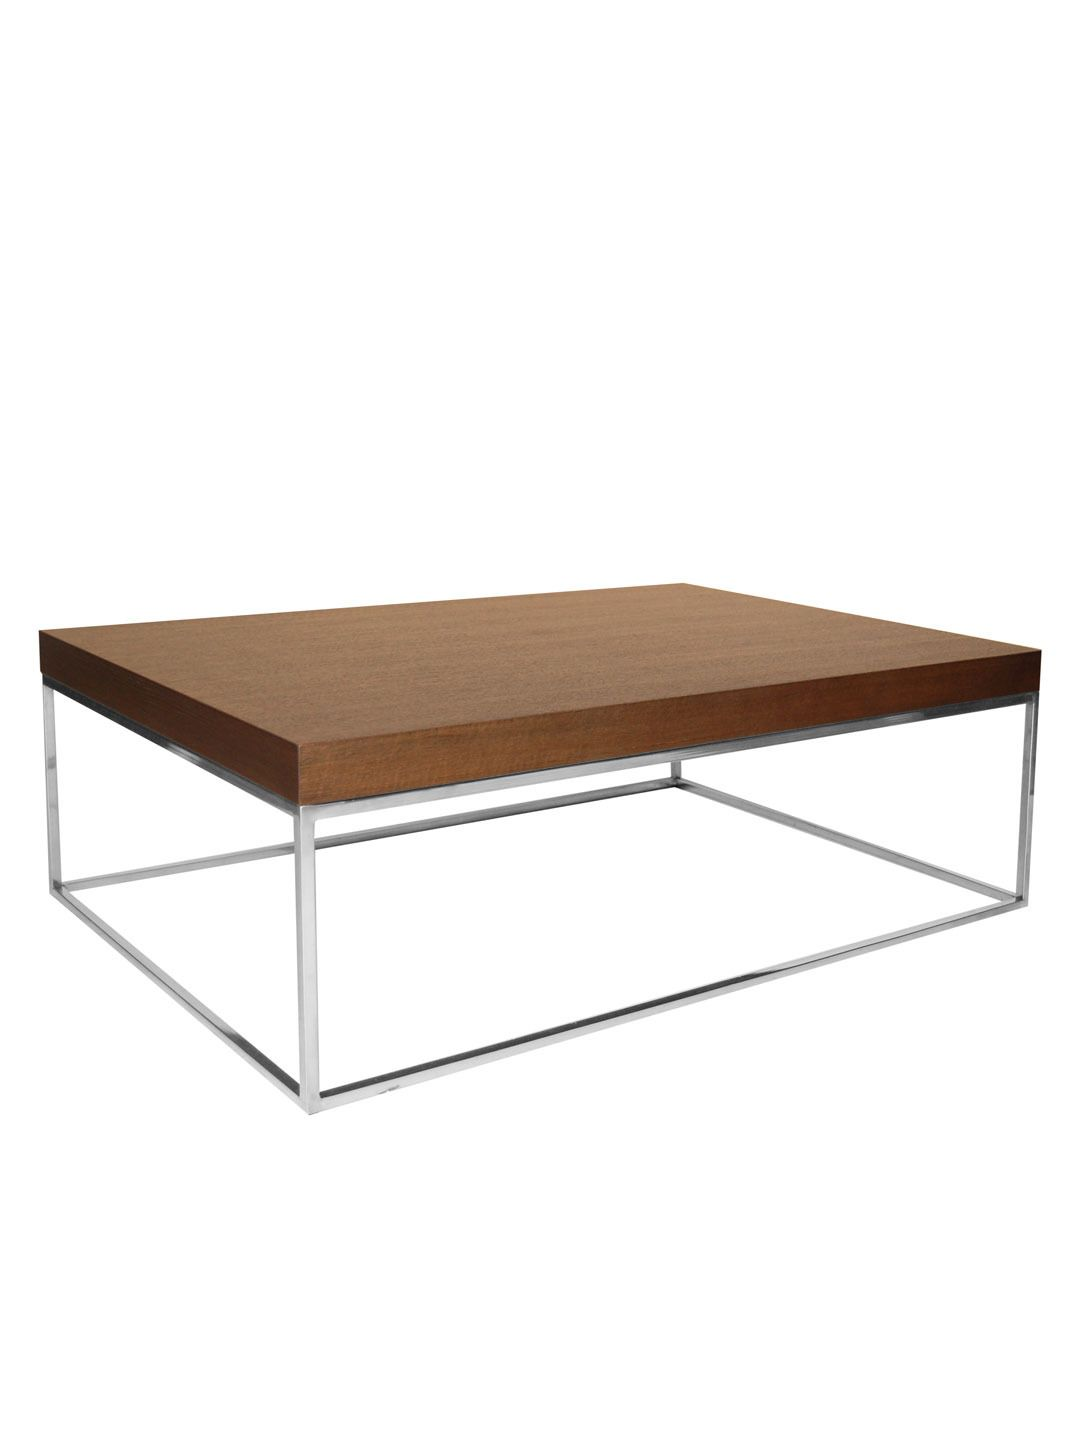 Fred deep coffee table by pangea home things for the living room fred deep coffee table by pangea home geotapseo Image collections